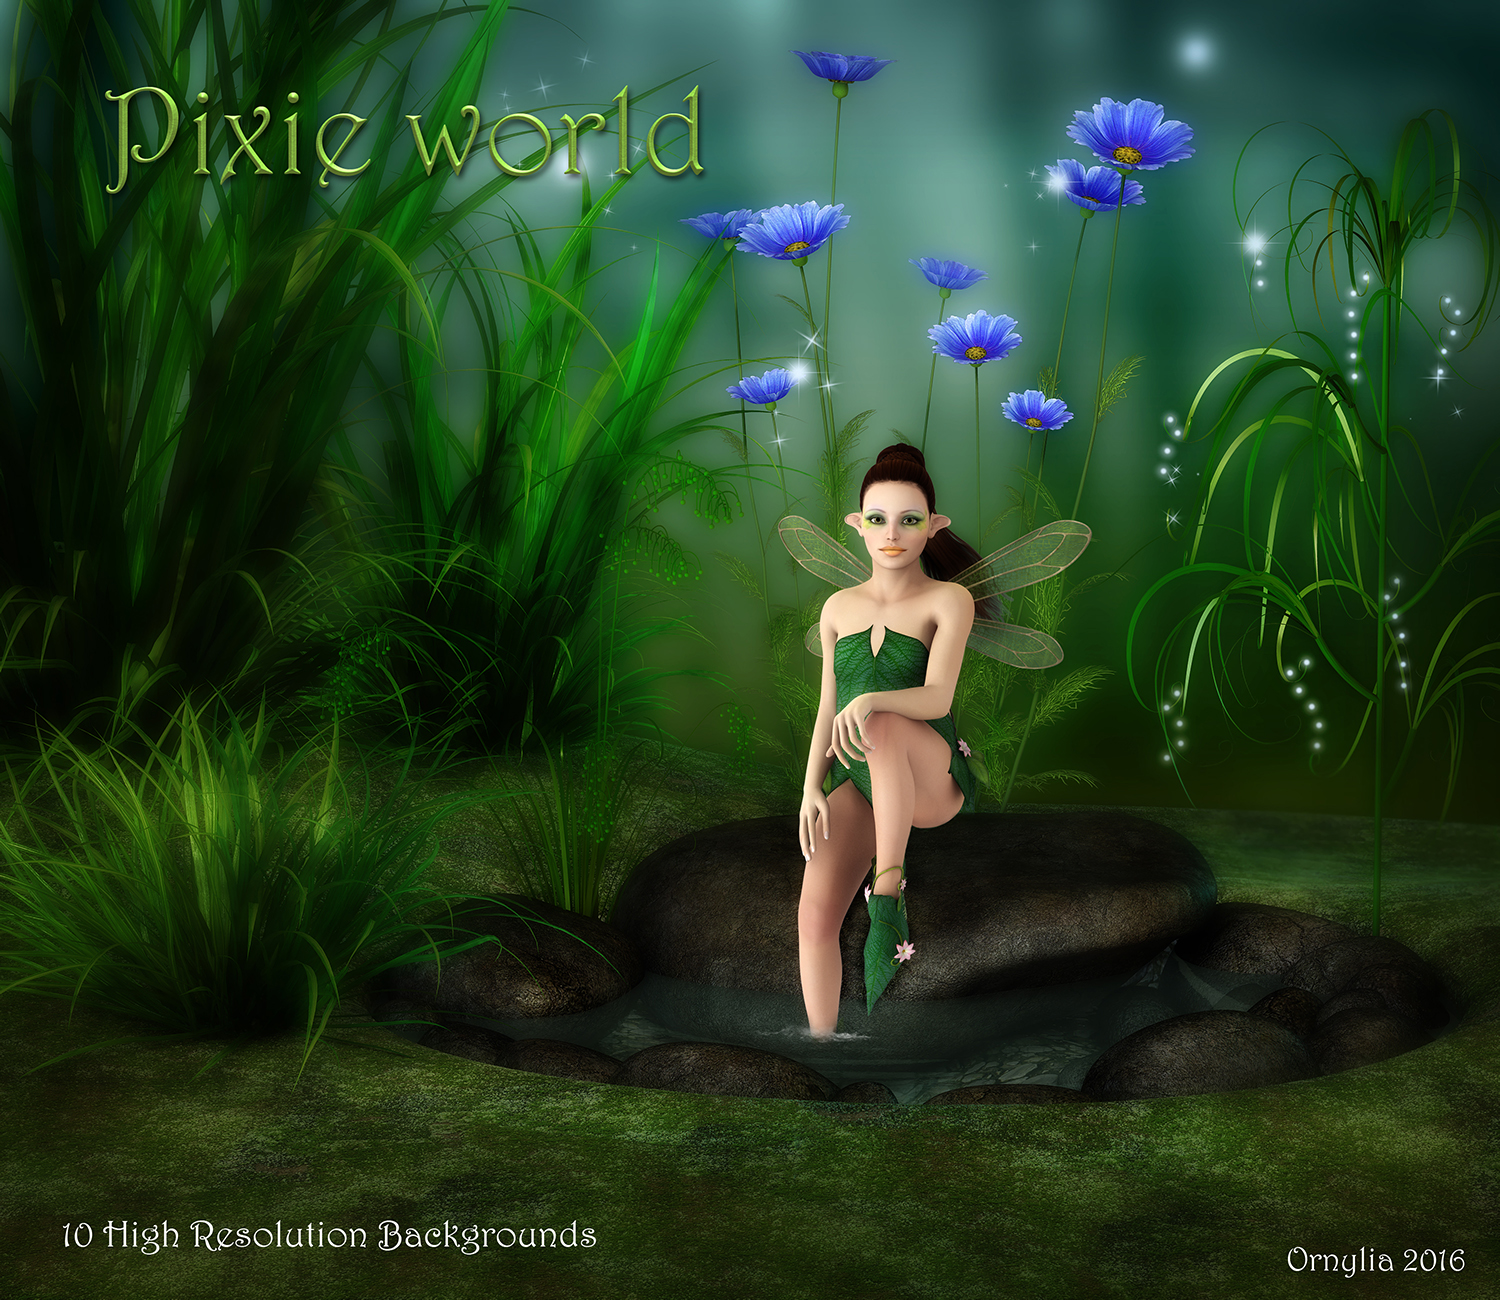 Pixie world